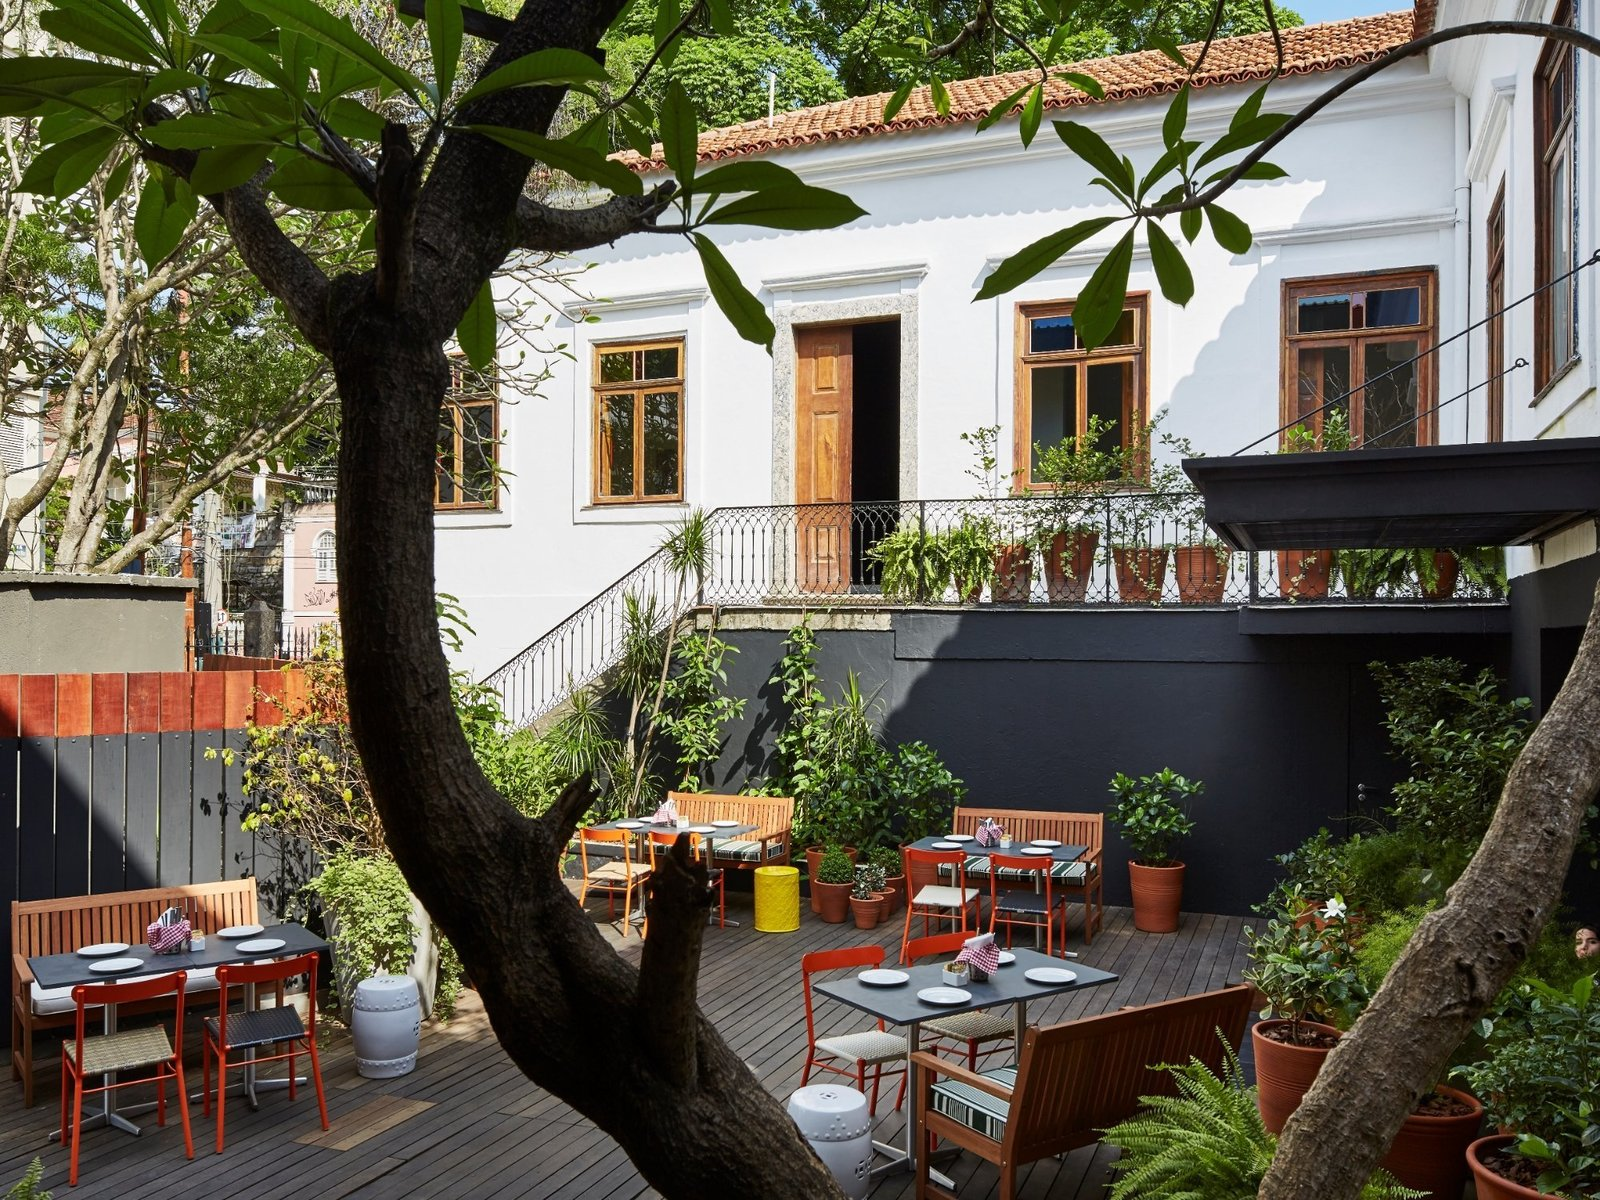 Outdoor, Metal Fences, Wall, Trees, Vertical Fences, Wall, Large Patio, Porch, Deck, Back Yard, Hanging Lighting, Decking Patio, Porch, Deck, and Raised Planters Mama Shelter Rio de Janeiro in Rio de Janeiro, Brazil  Mama Shelter Rio De Janeiro